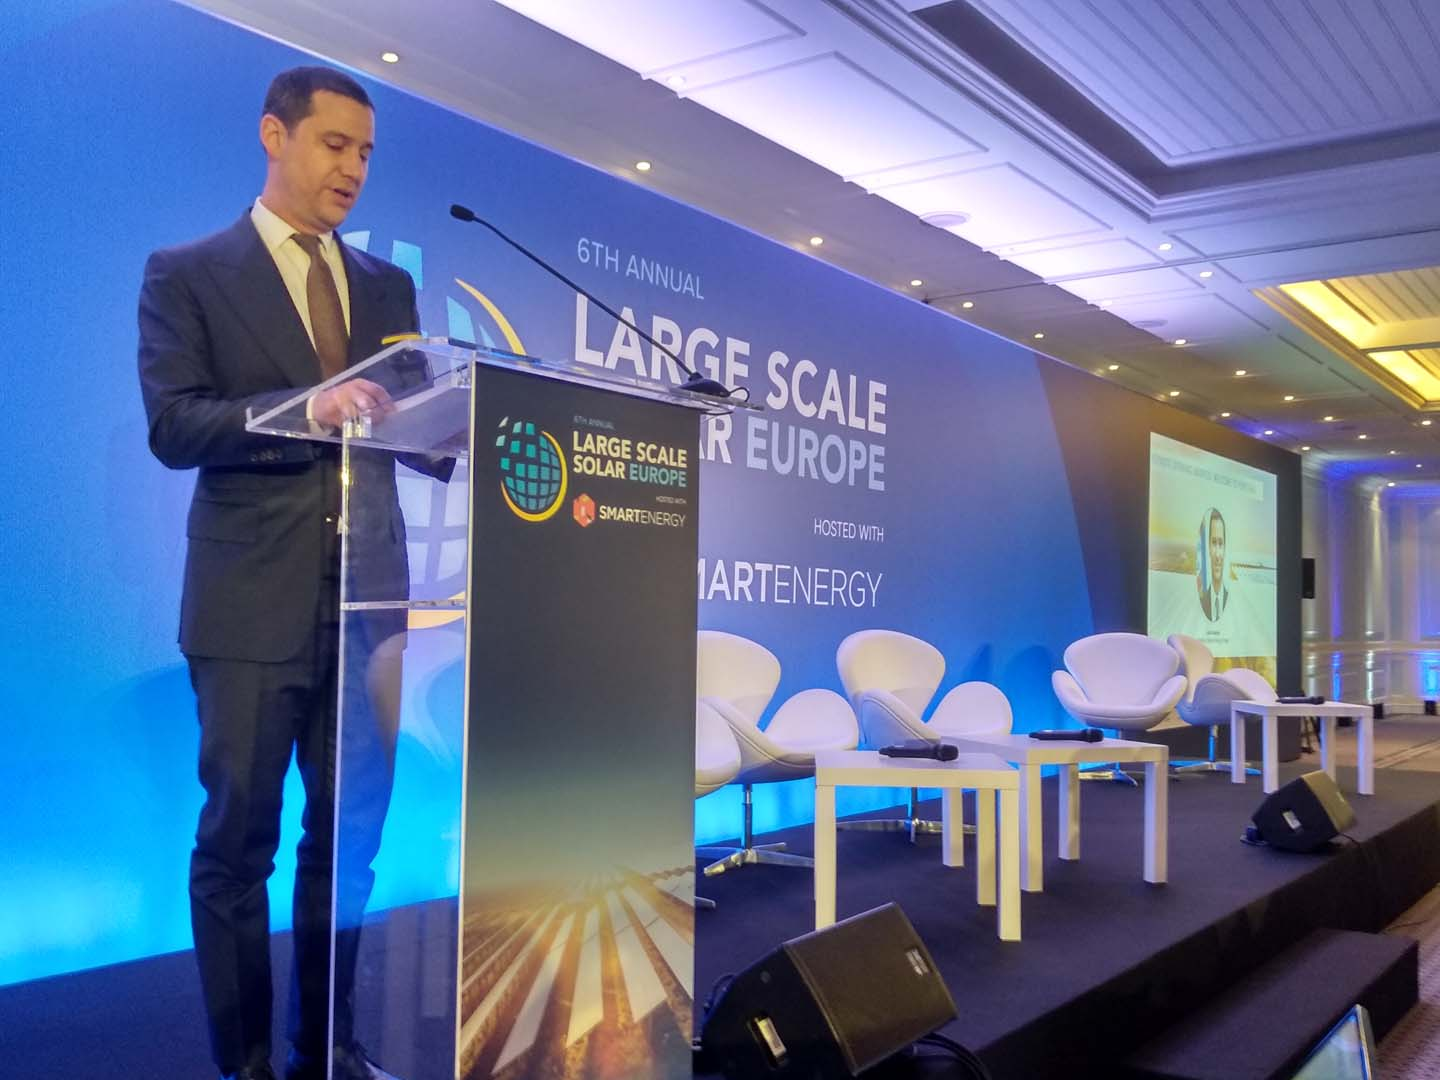 End of subsidies is not the end of state intervention, said state secretary Galamba in his opening remarks (Credit: Solar Media)